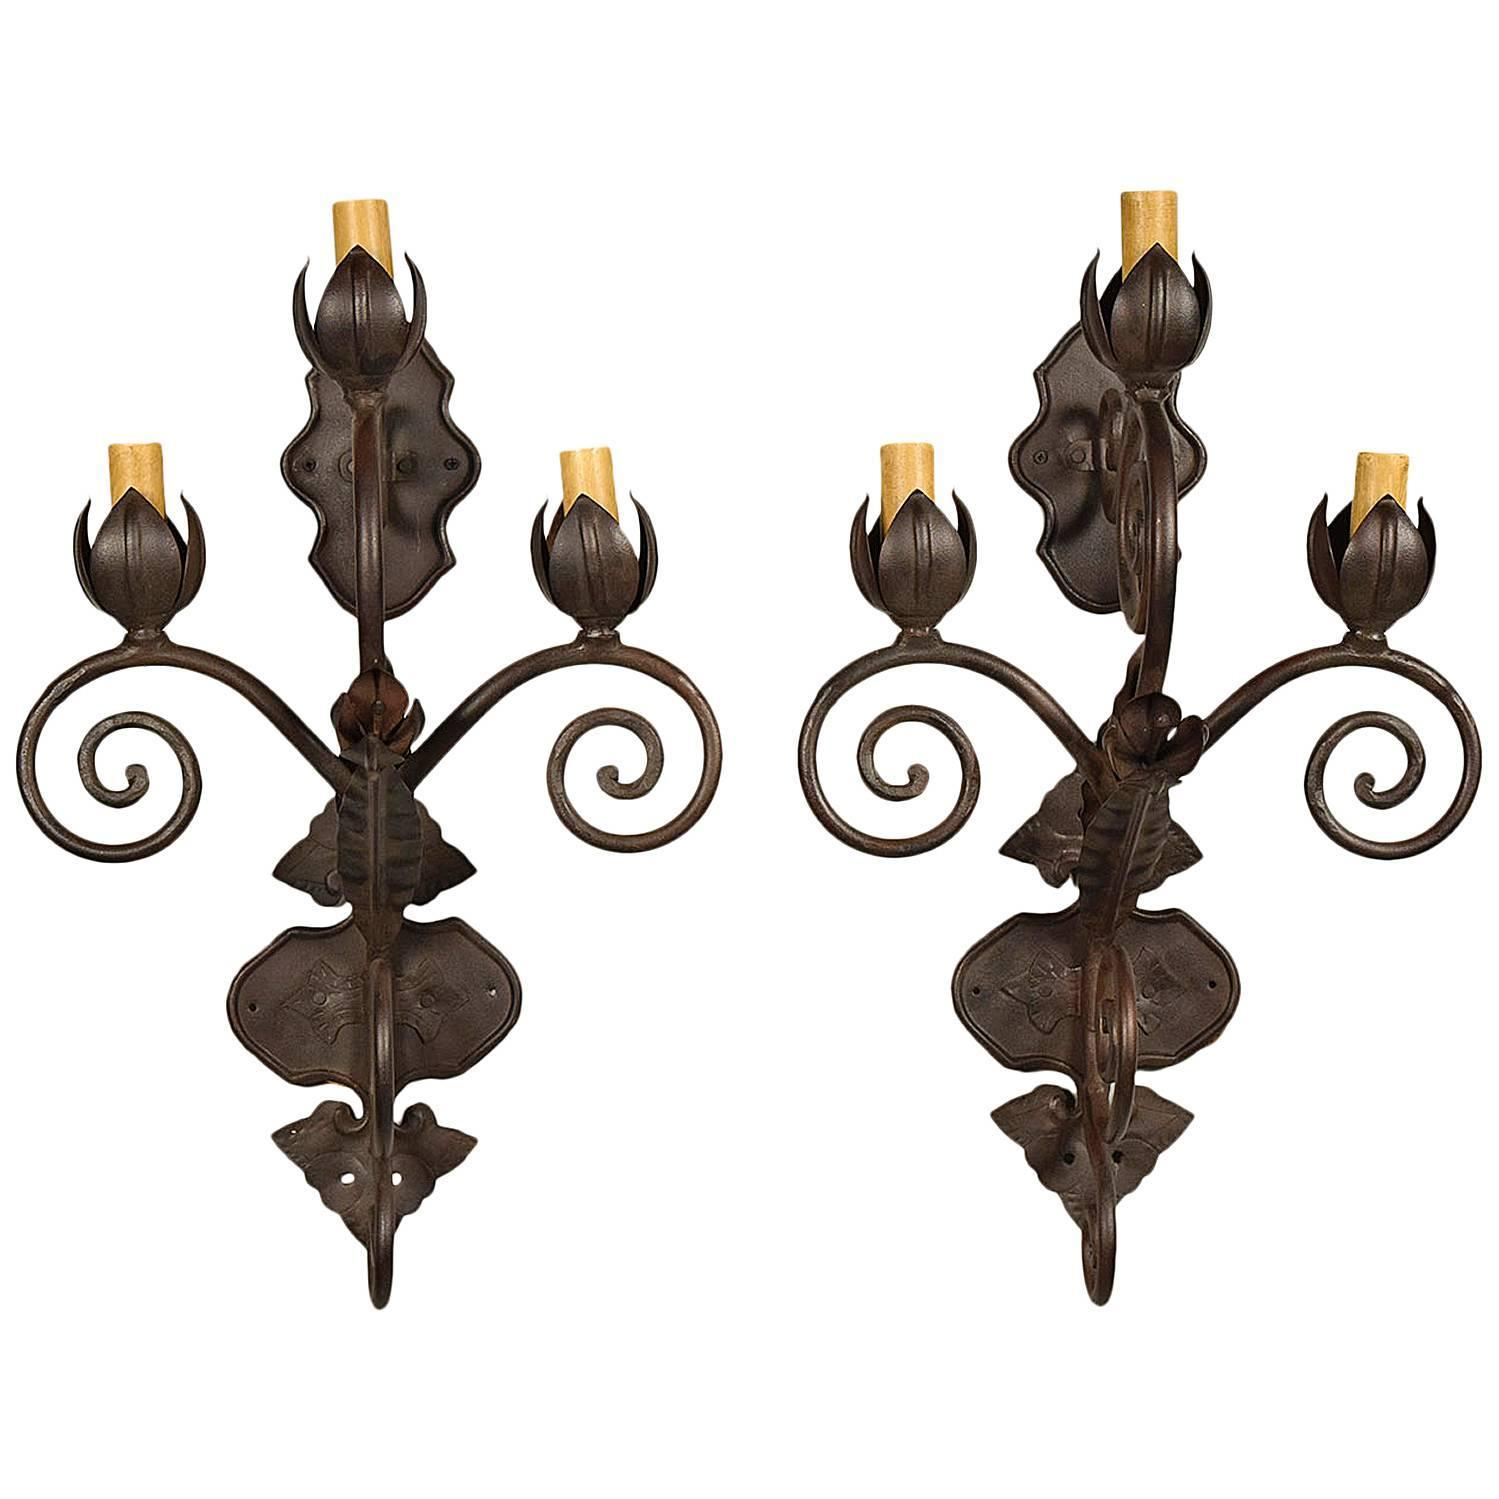 Vintage Iron Wall Sconces : Pair of Vintage Iron Wall Sconces For Sale at 1stdibs